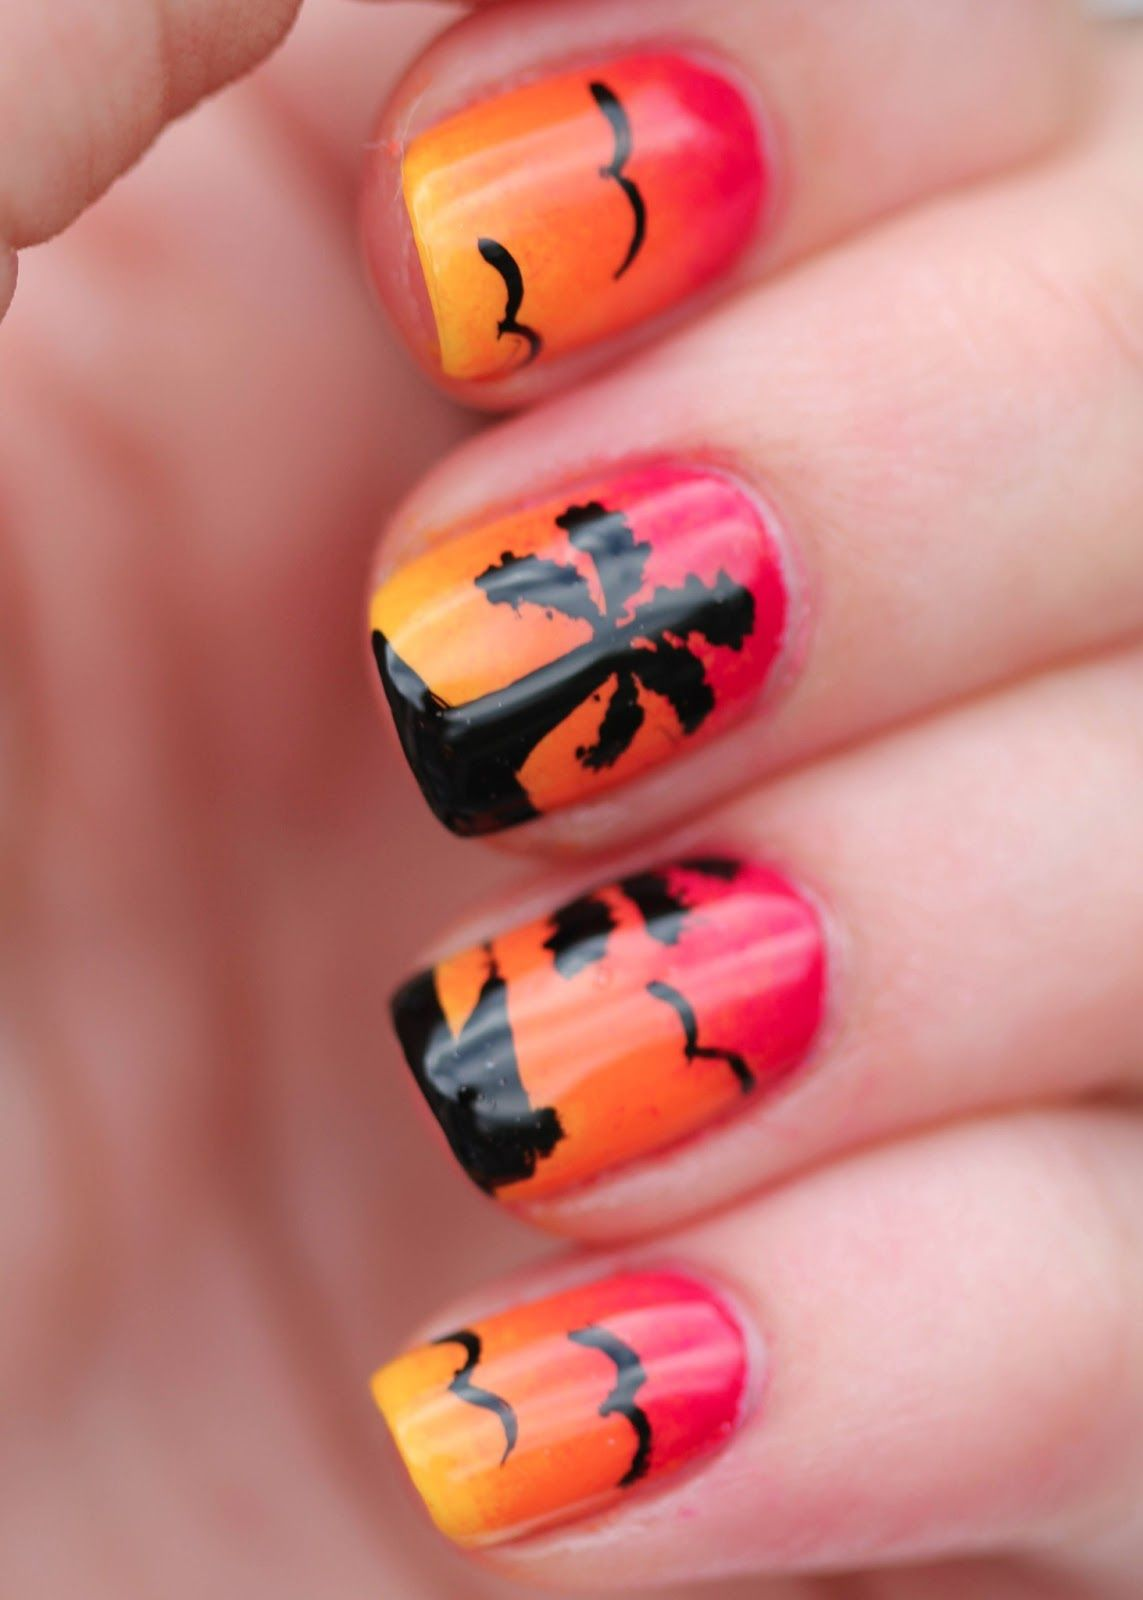 Sunset nail art with palm trees, birds and boat - Image Result For Sunset Nails Themed Nails Pinterest Sunset